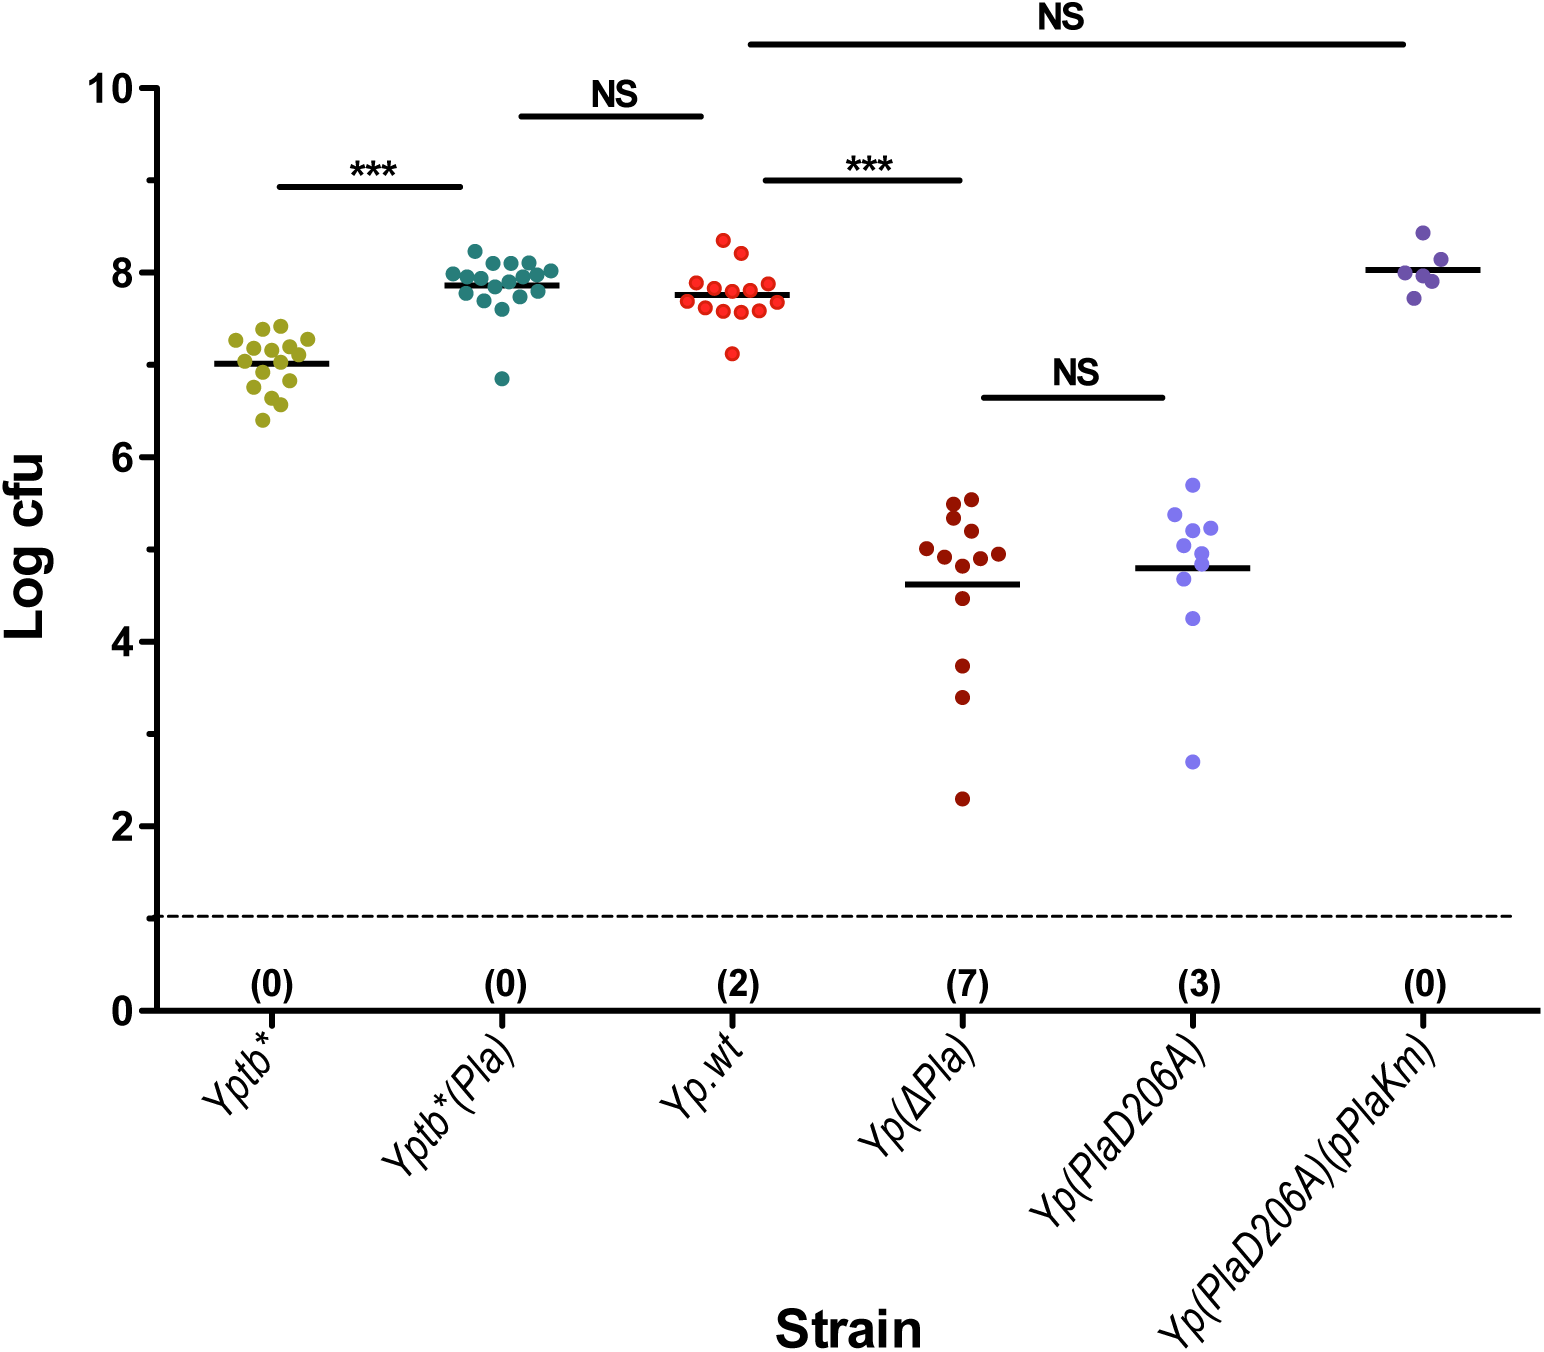 dLN colonization by <i>Yersinia</i> strains differentially expressing the proteolytic activity of Pla.